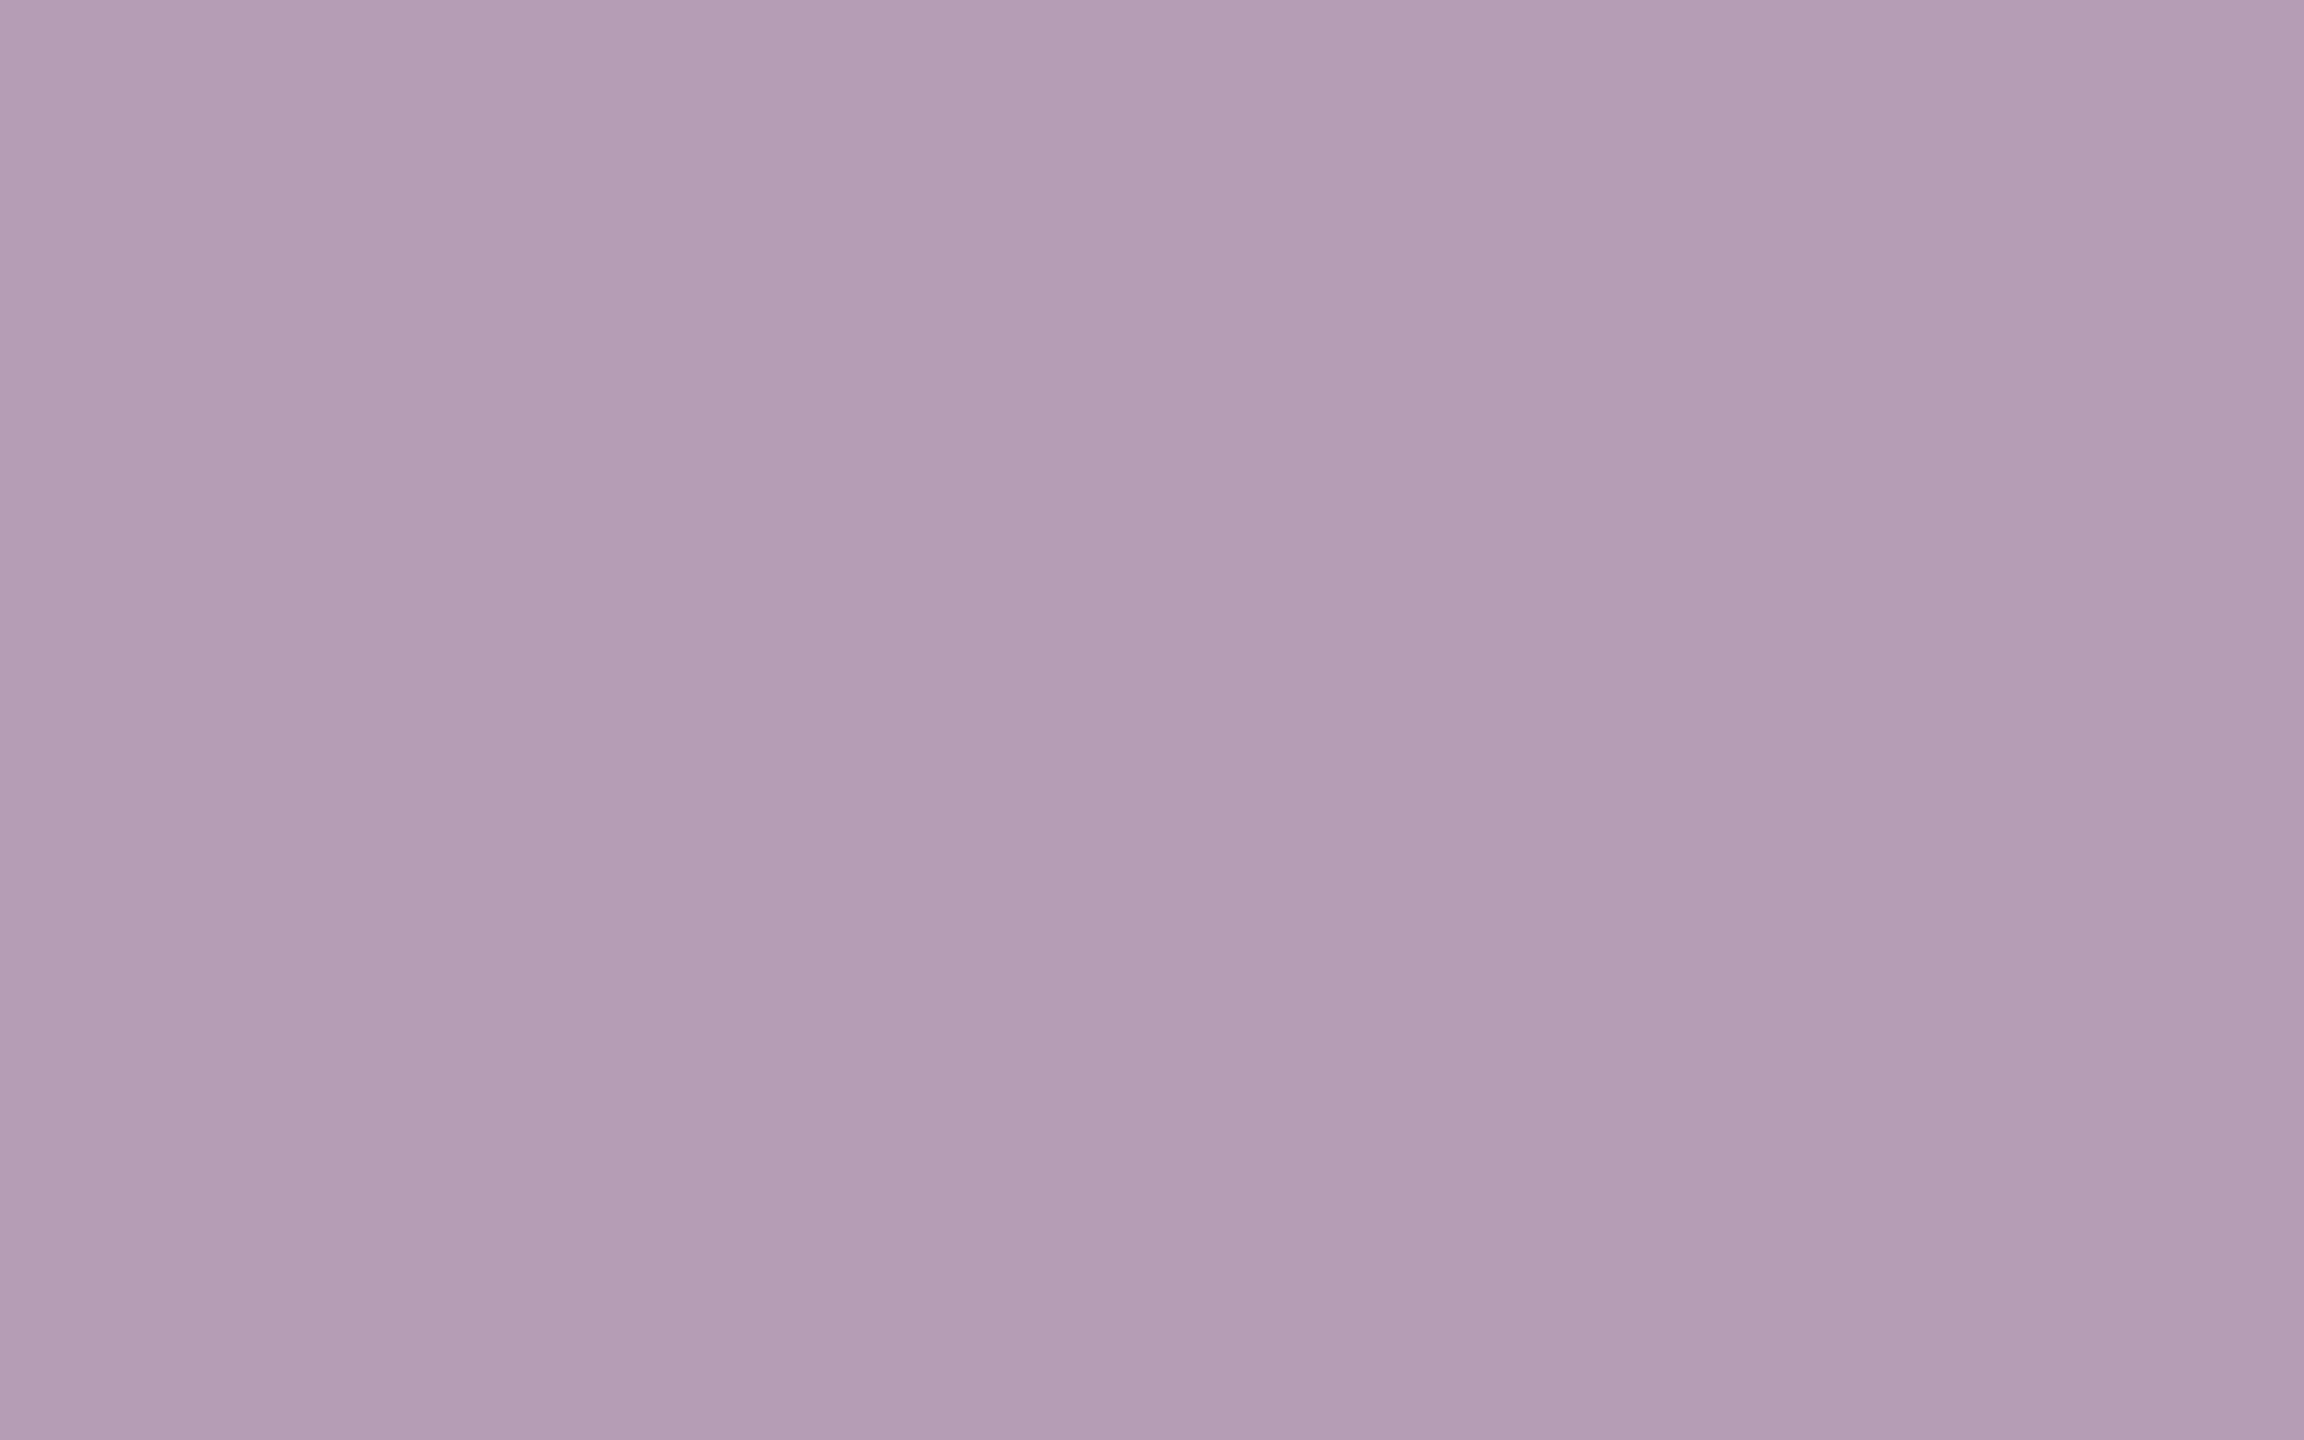 2304x1440 Pastel Purple Solid Color Background